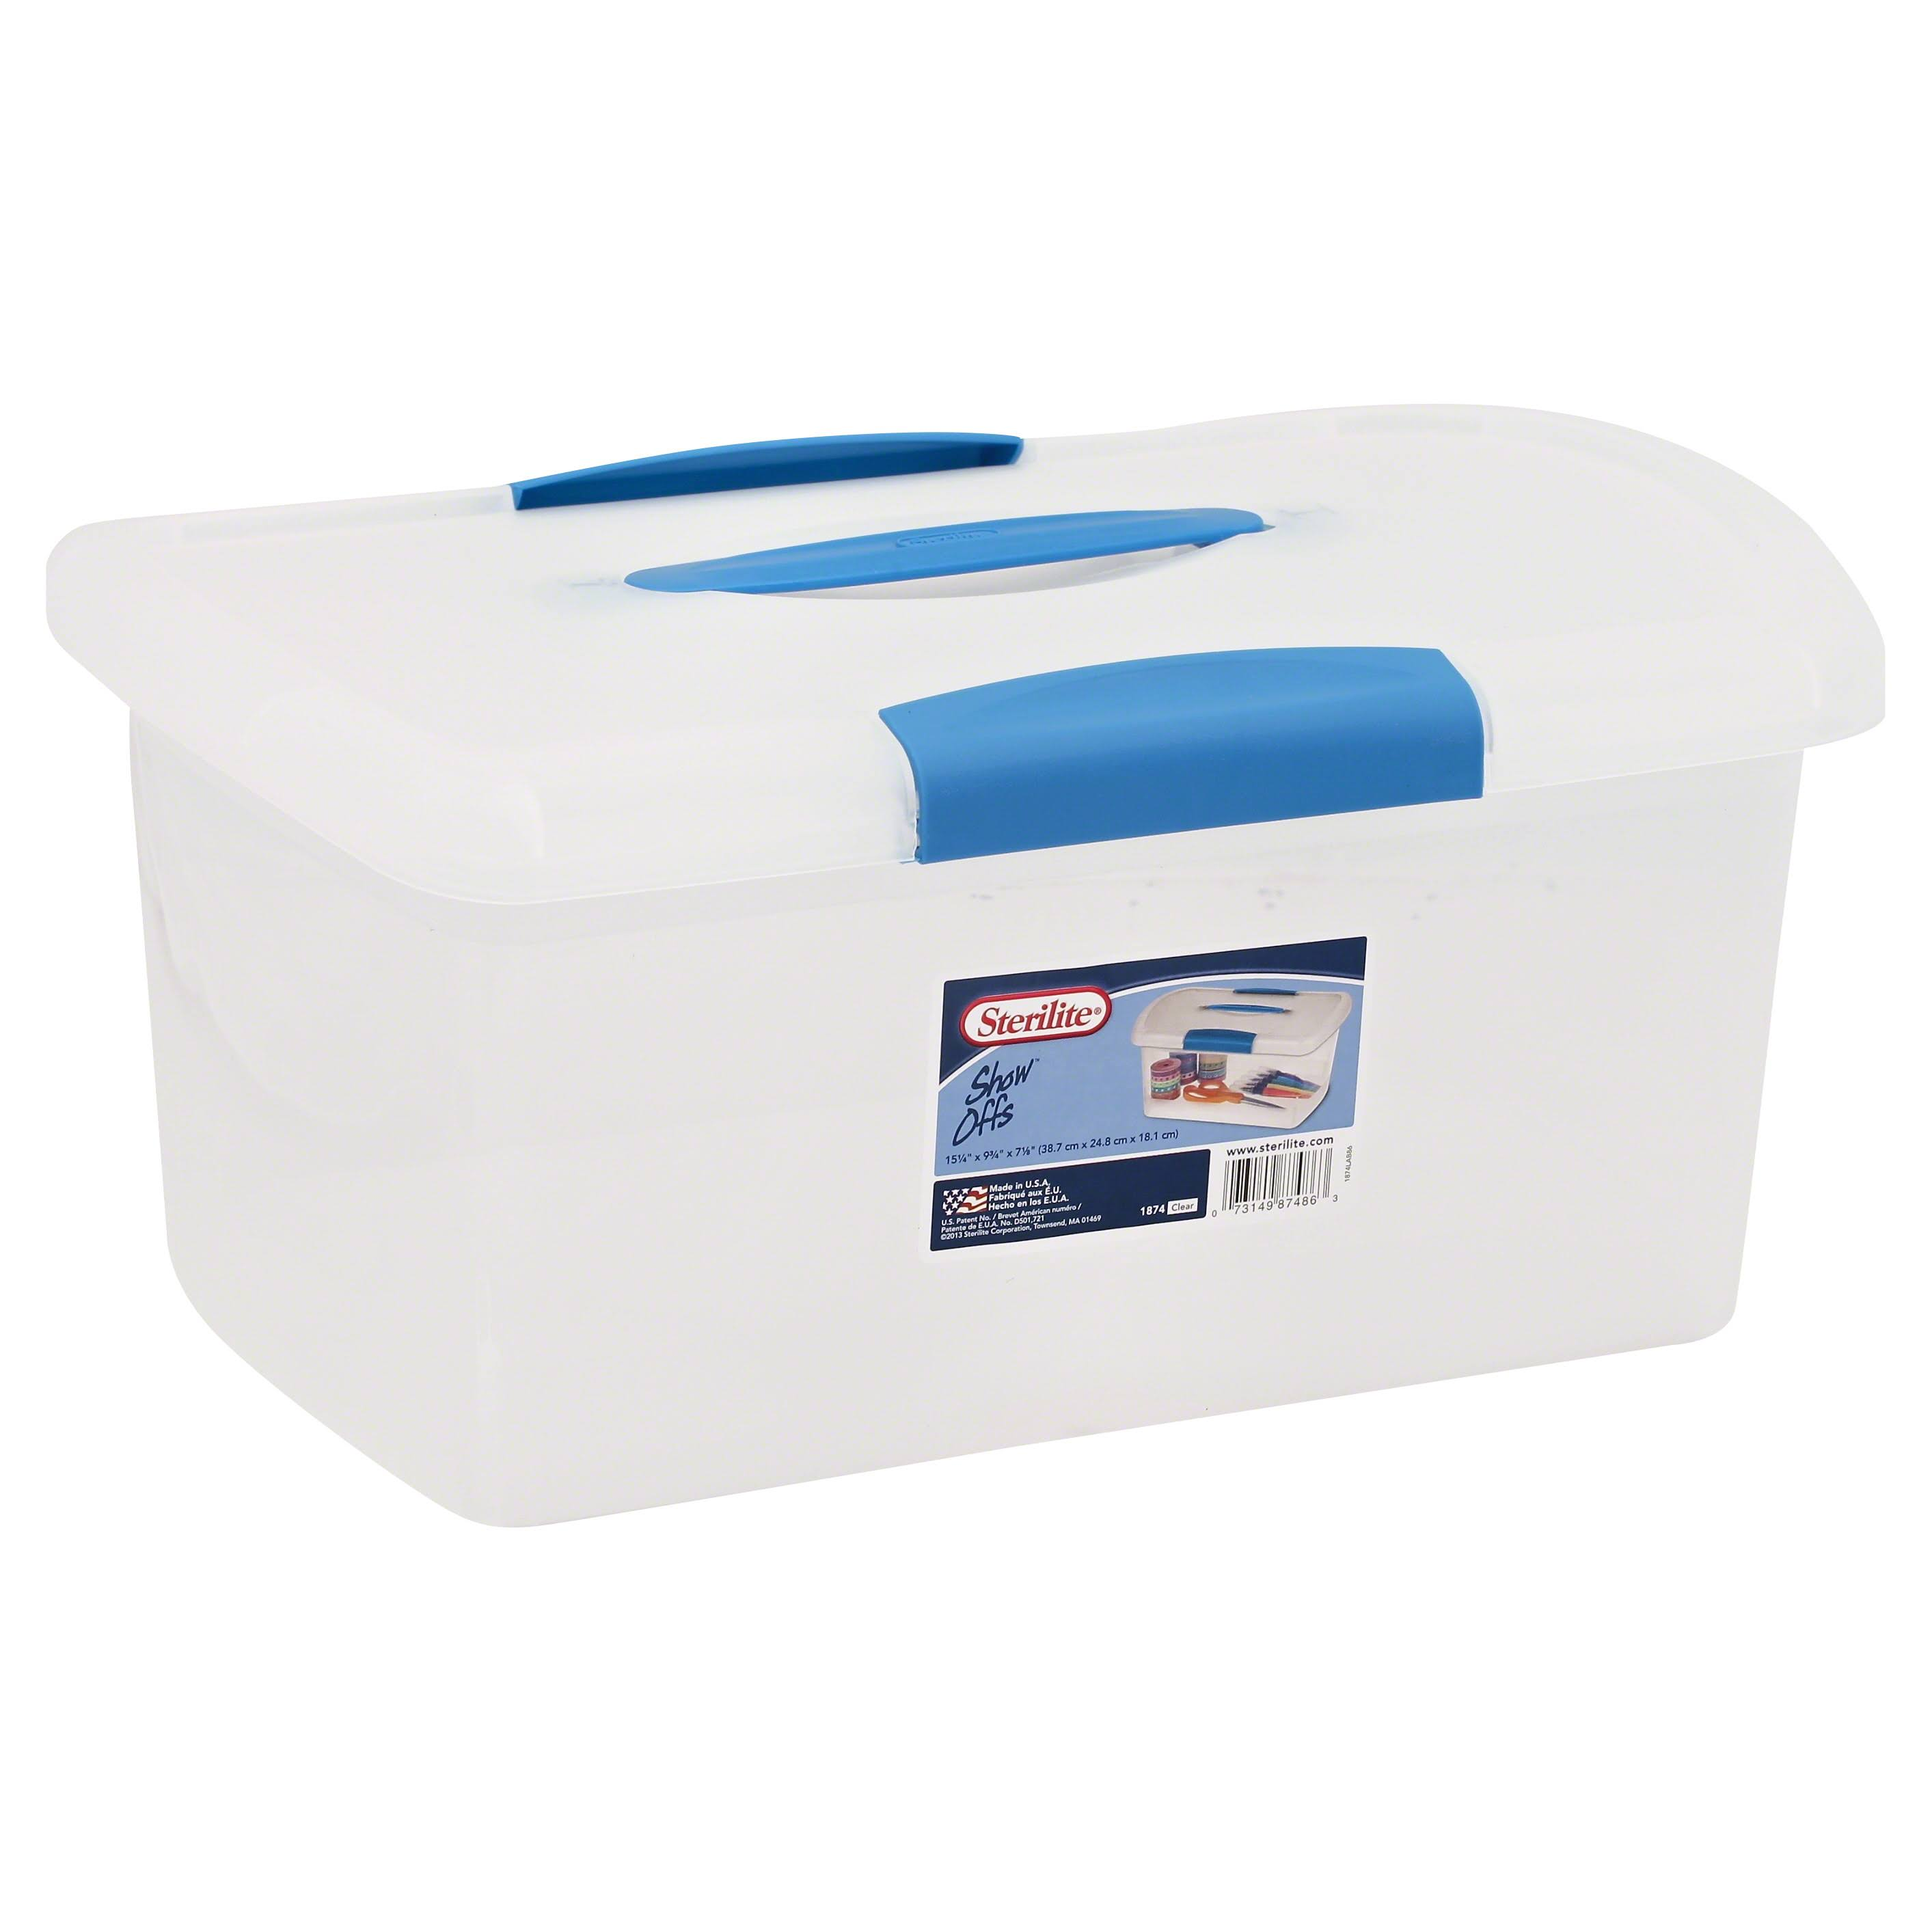 Sterilite Storage Box - Medium, Clear